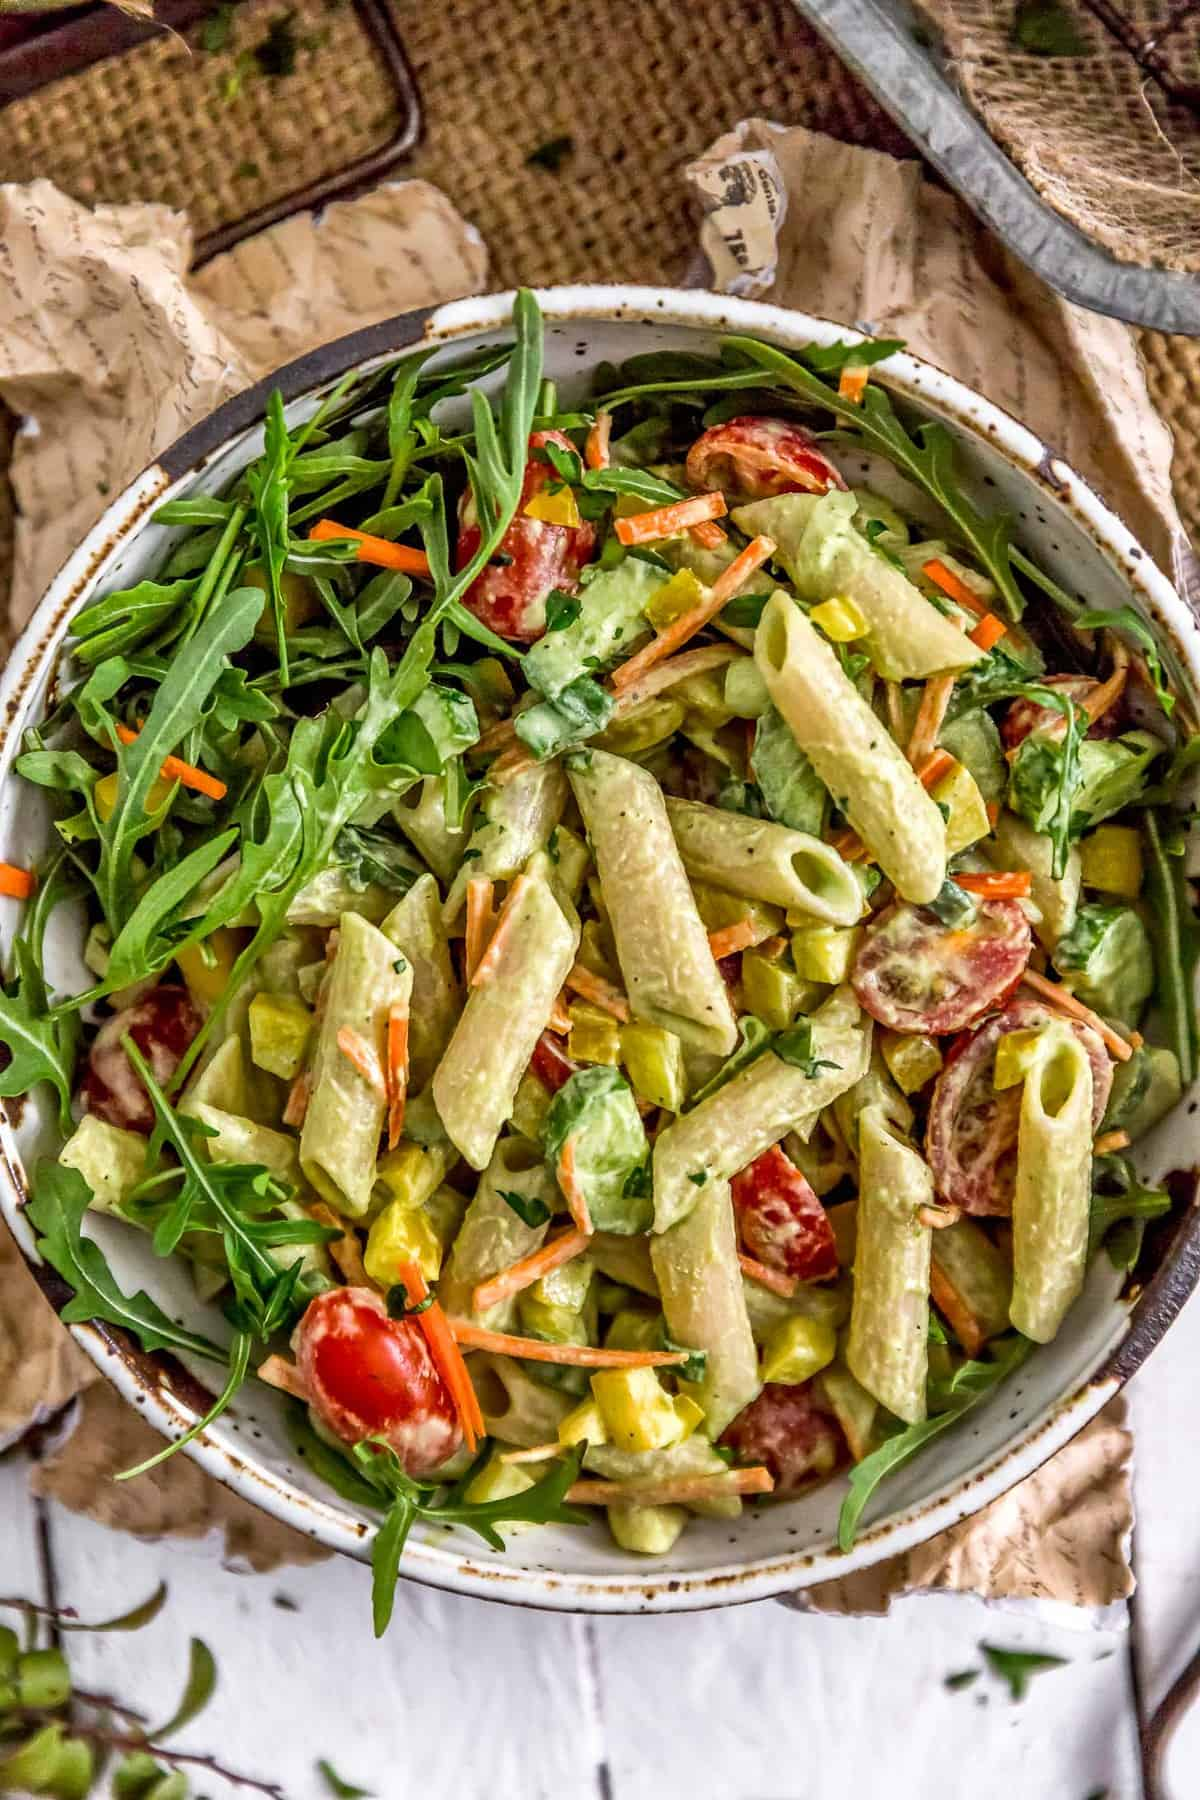 Vegan Green Goddess Pasta Salad